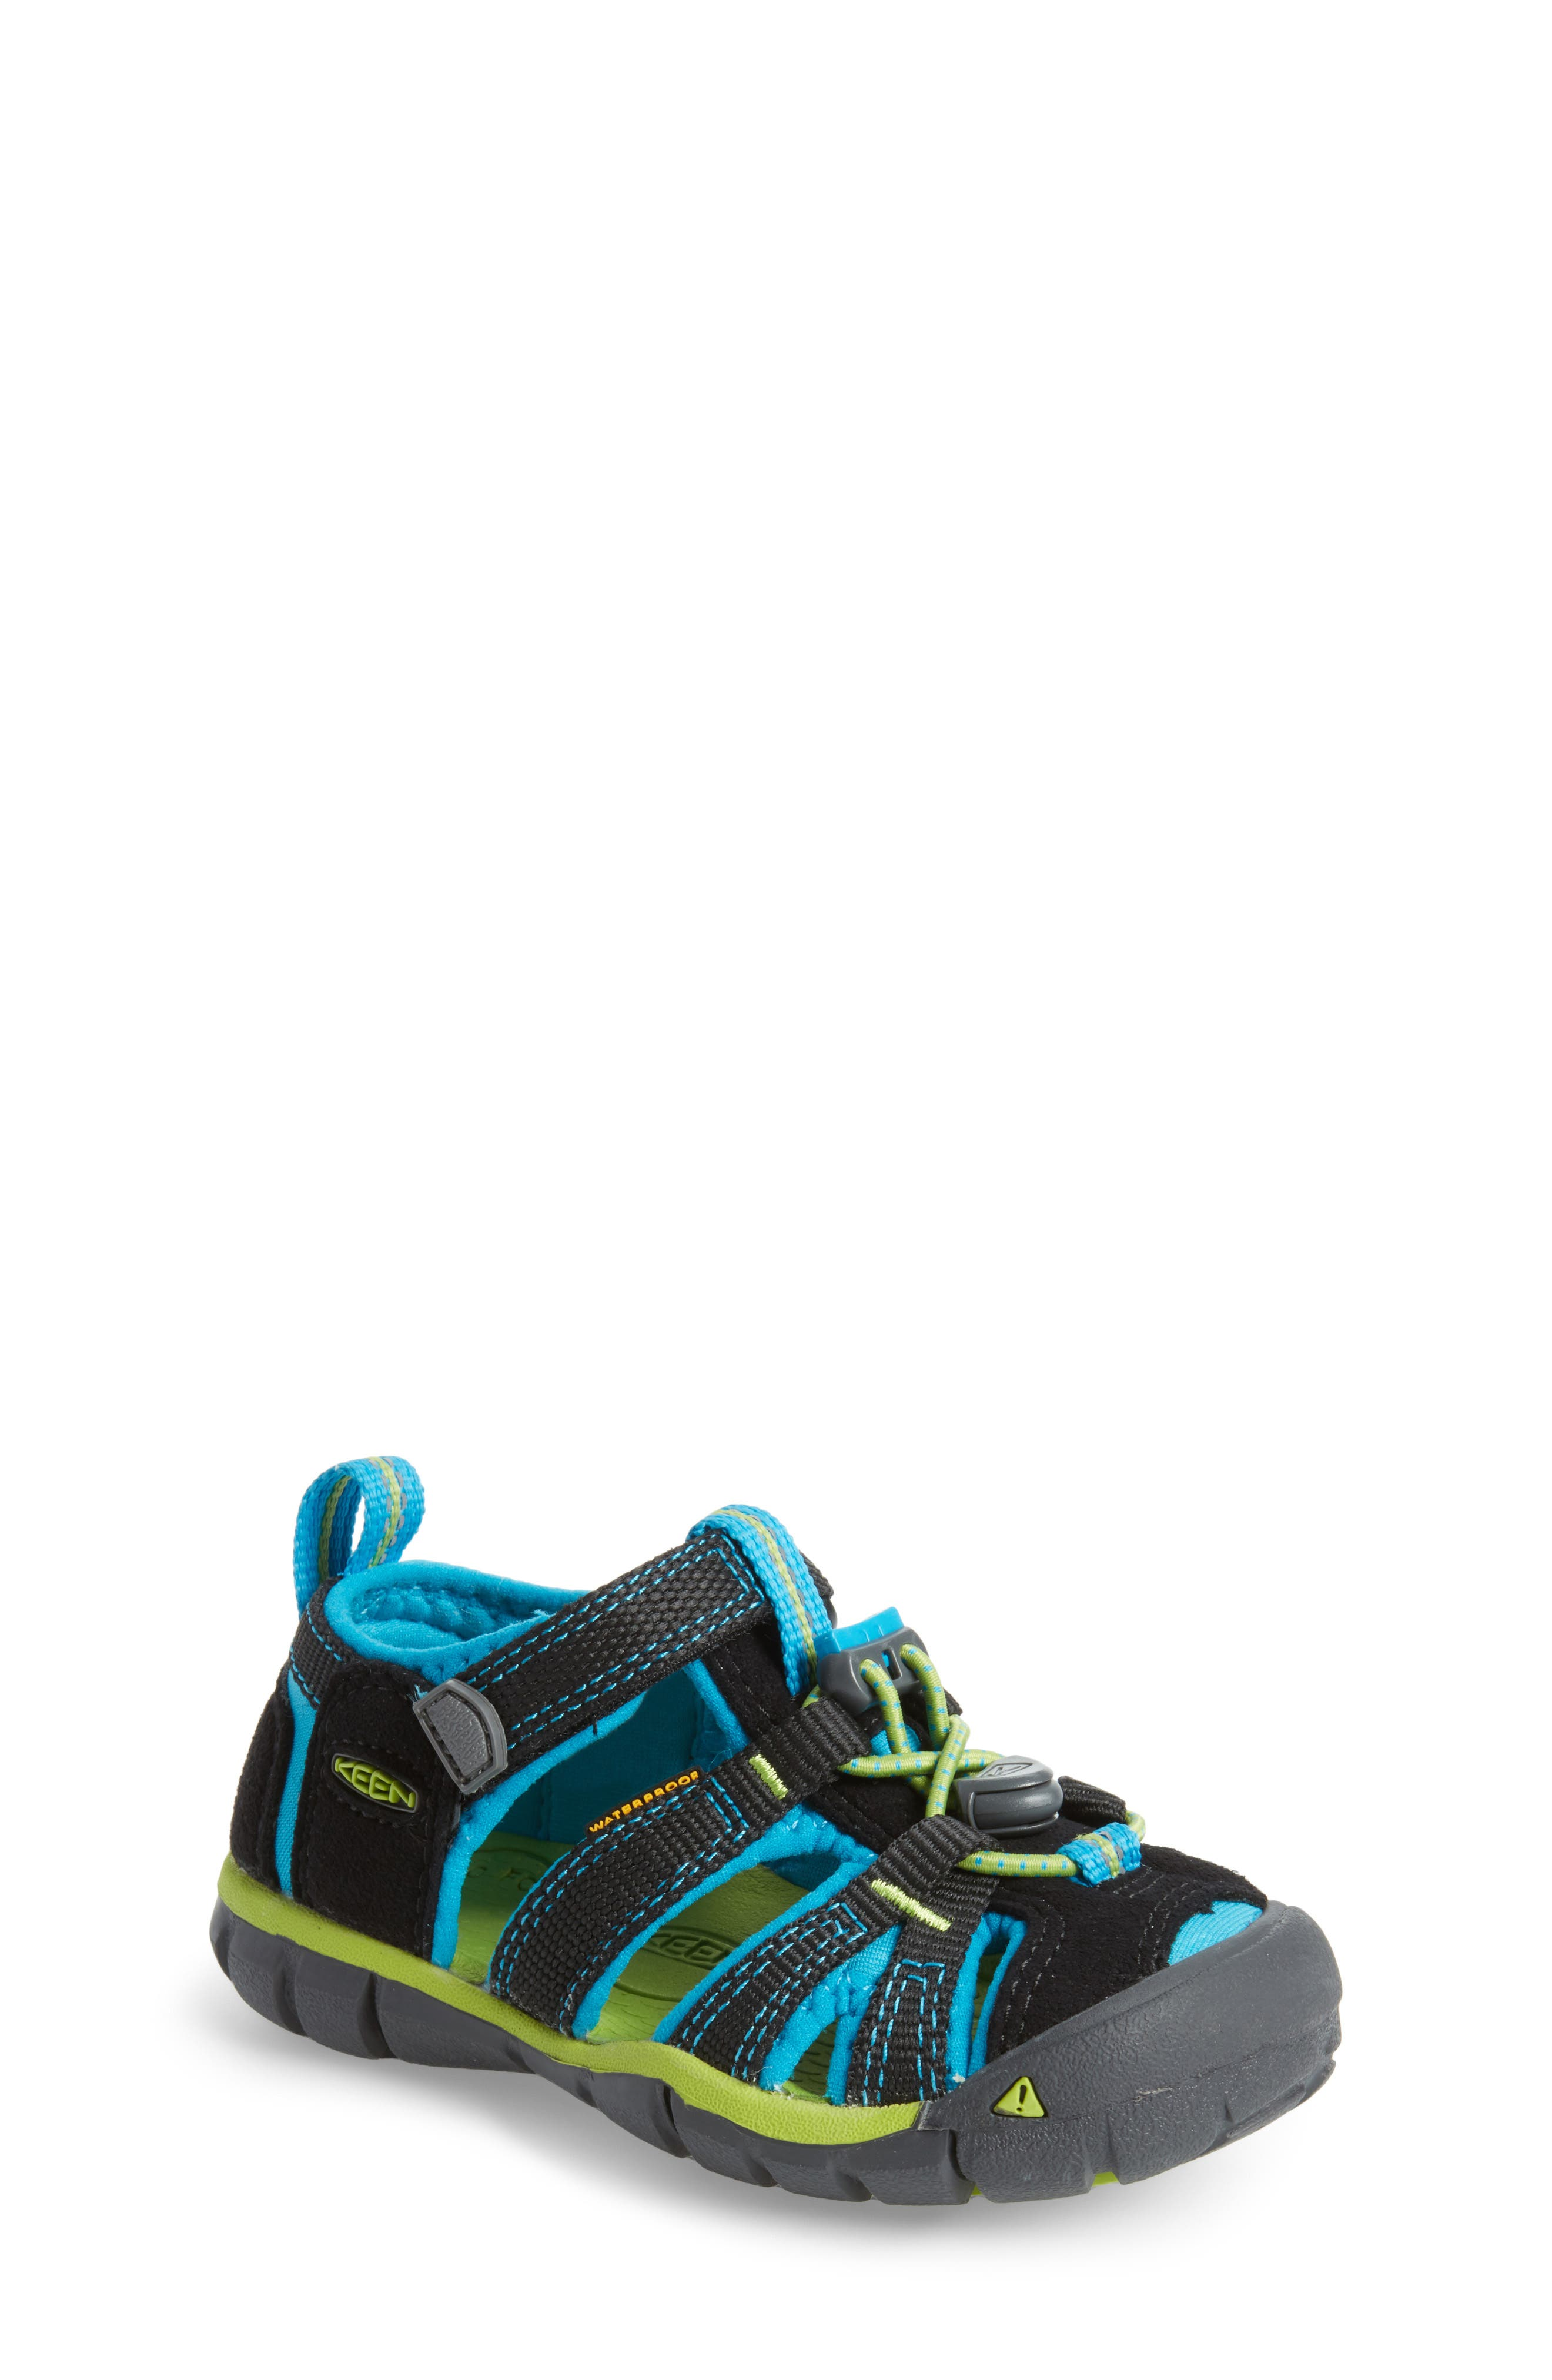 KEEN 'Seacamp II' Water Friendly Sandal, Main, color, BLACK/ BLUE DANUBE